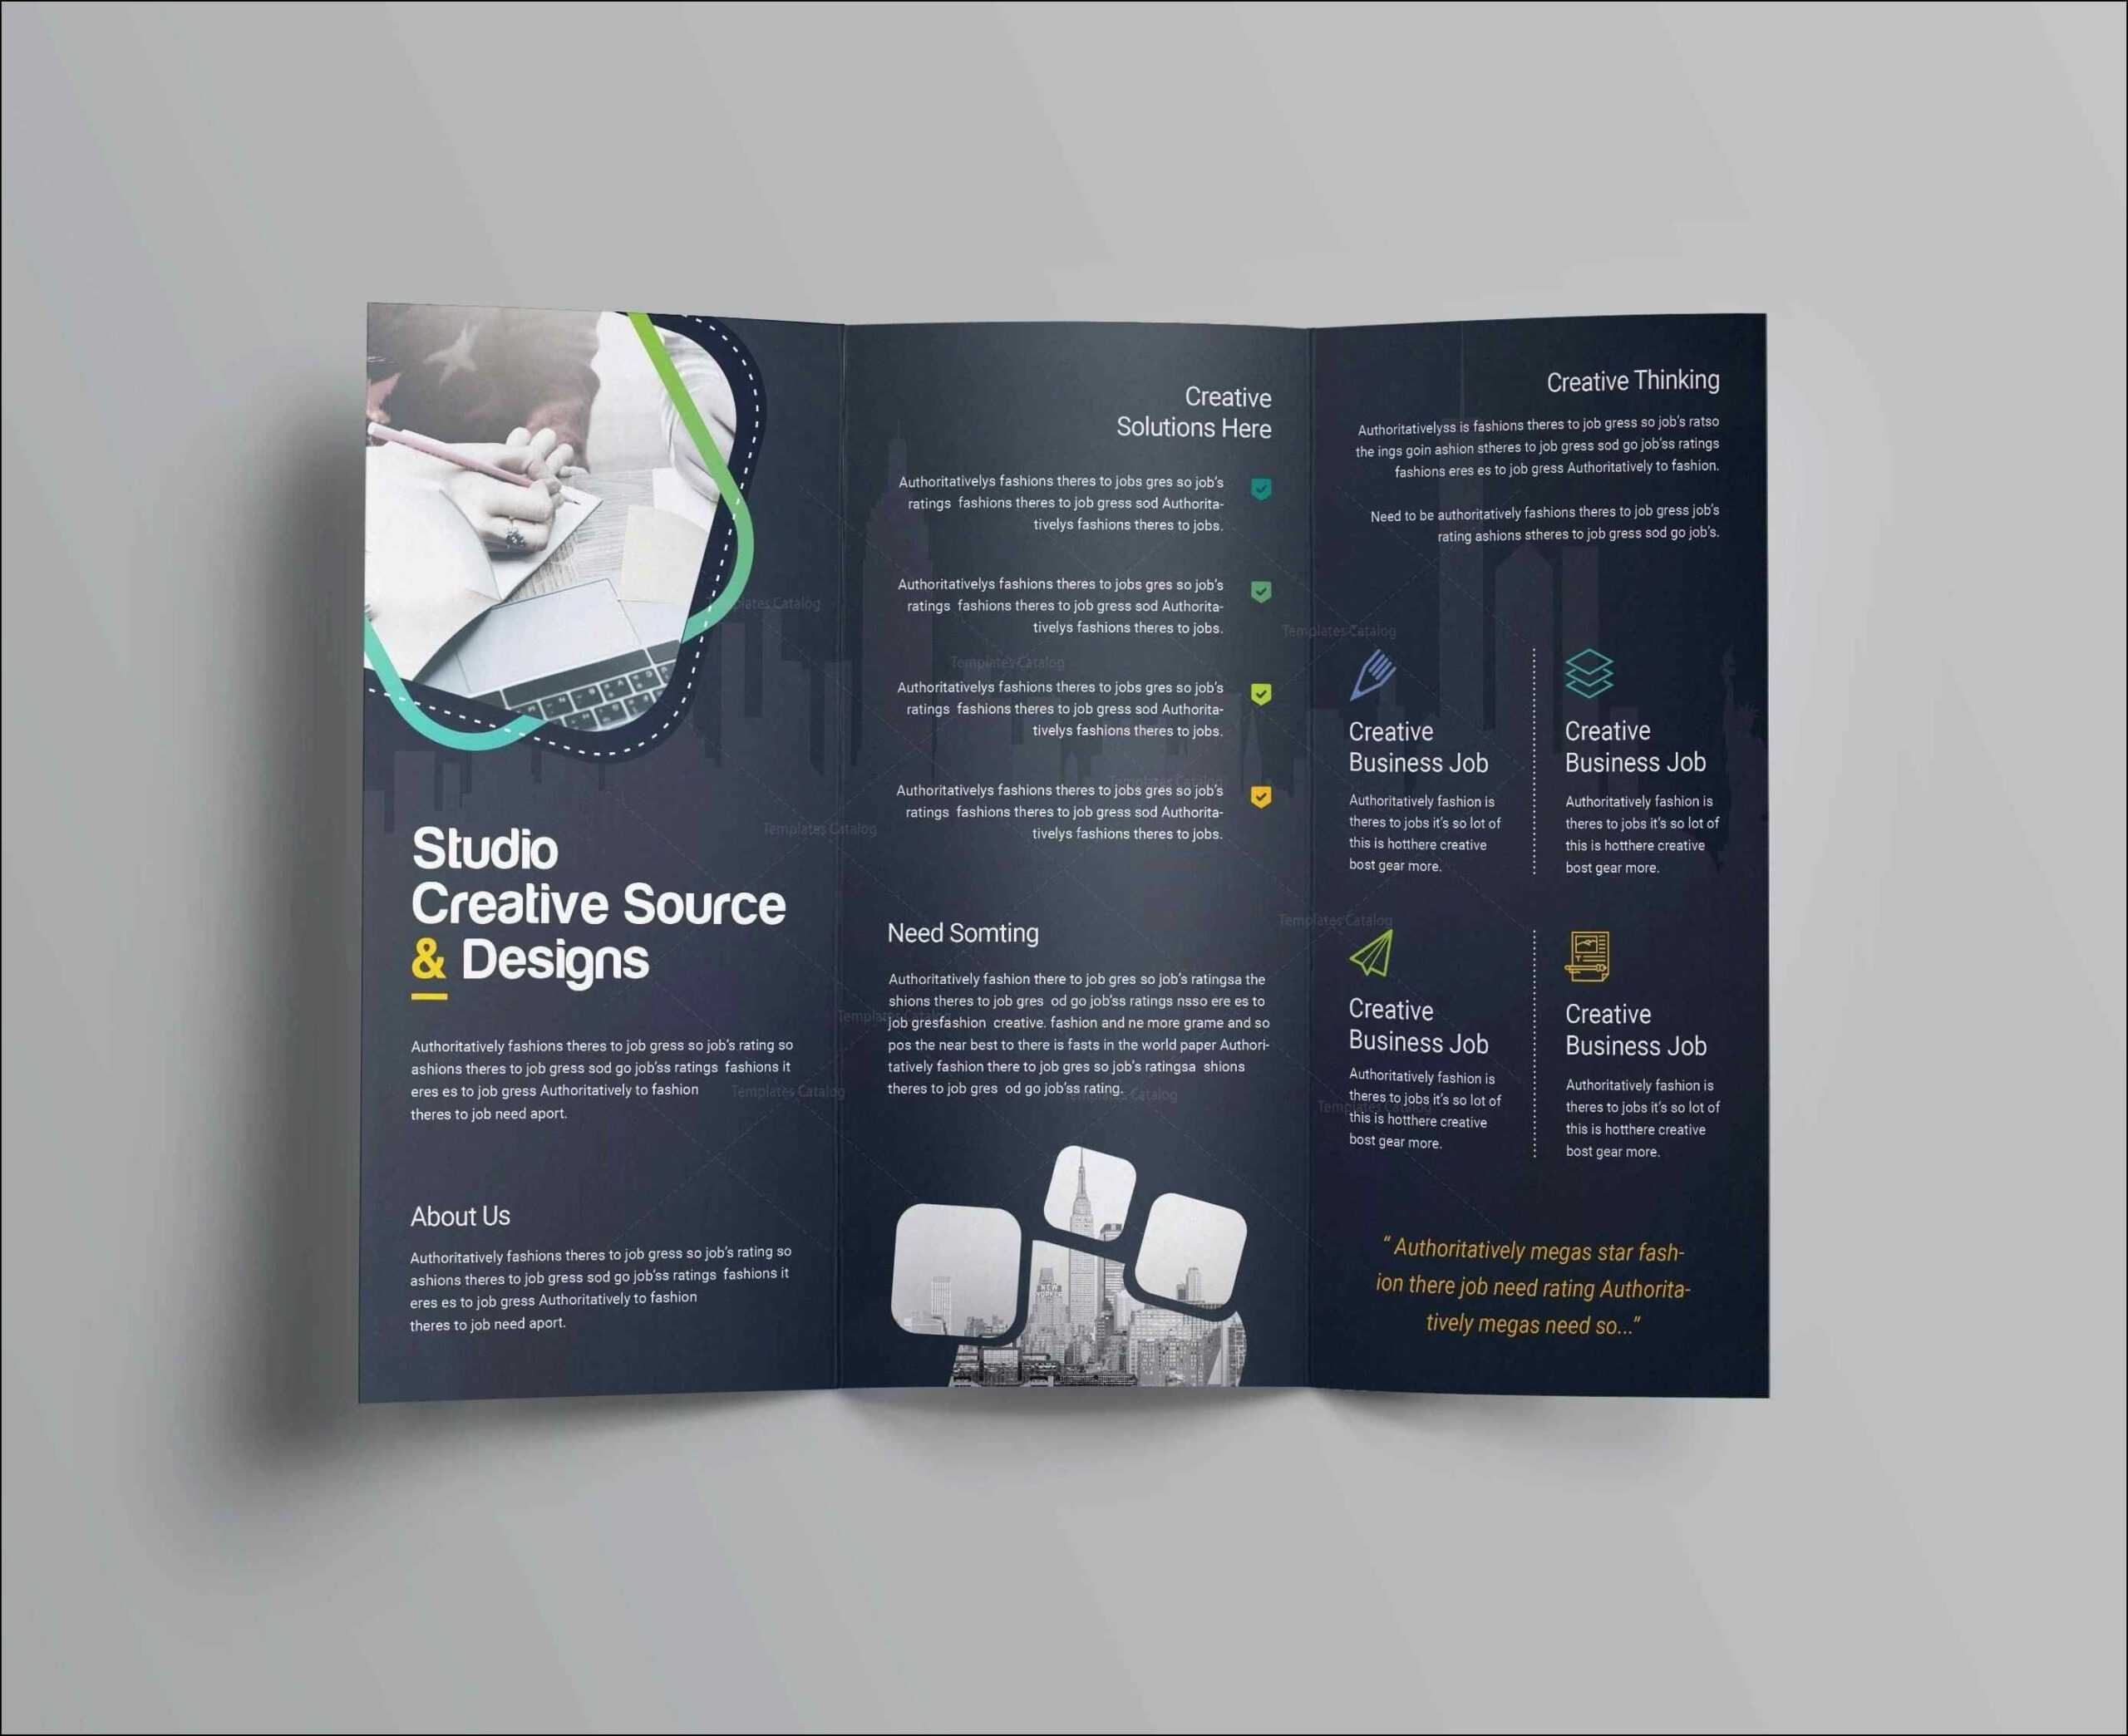 Awesome 27 Word Travel Brochure Template   Brochure Designs regarding Word Travel Brochure Template